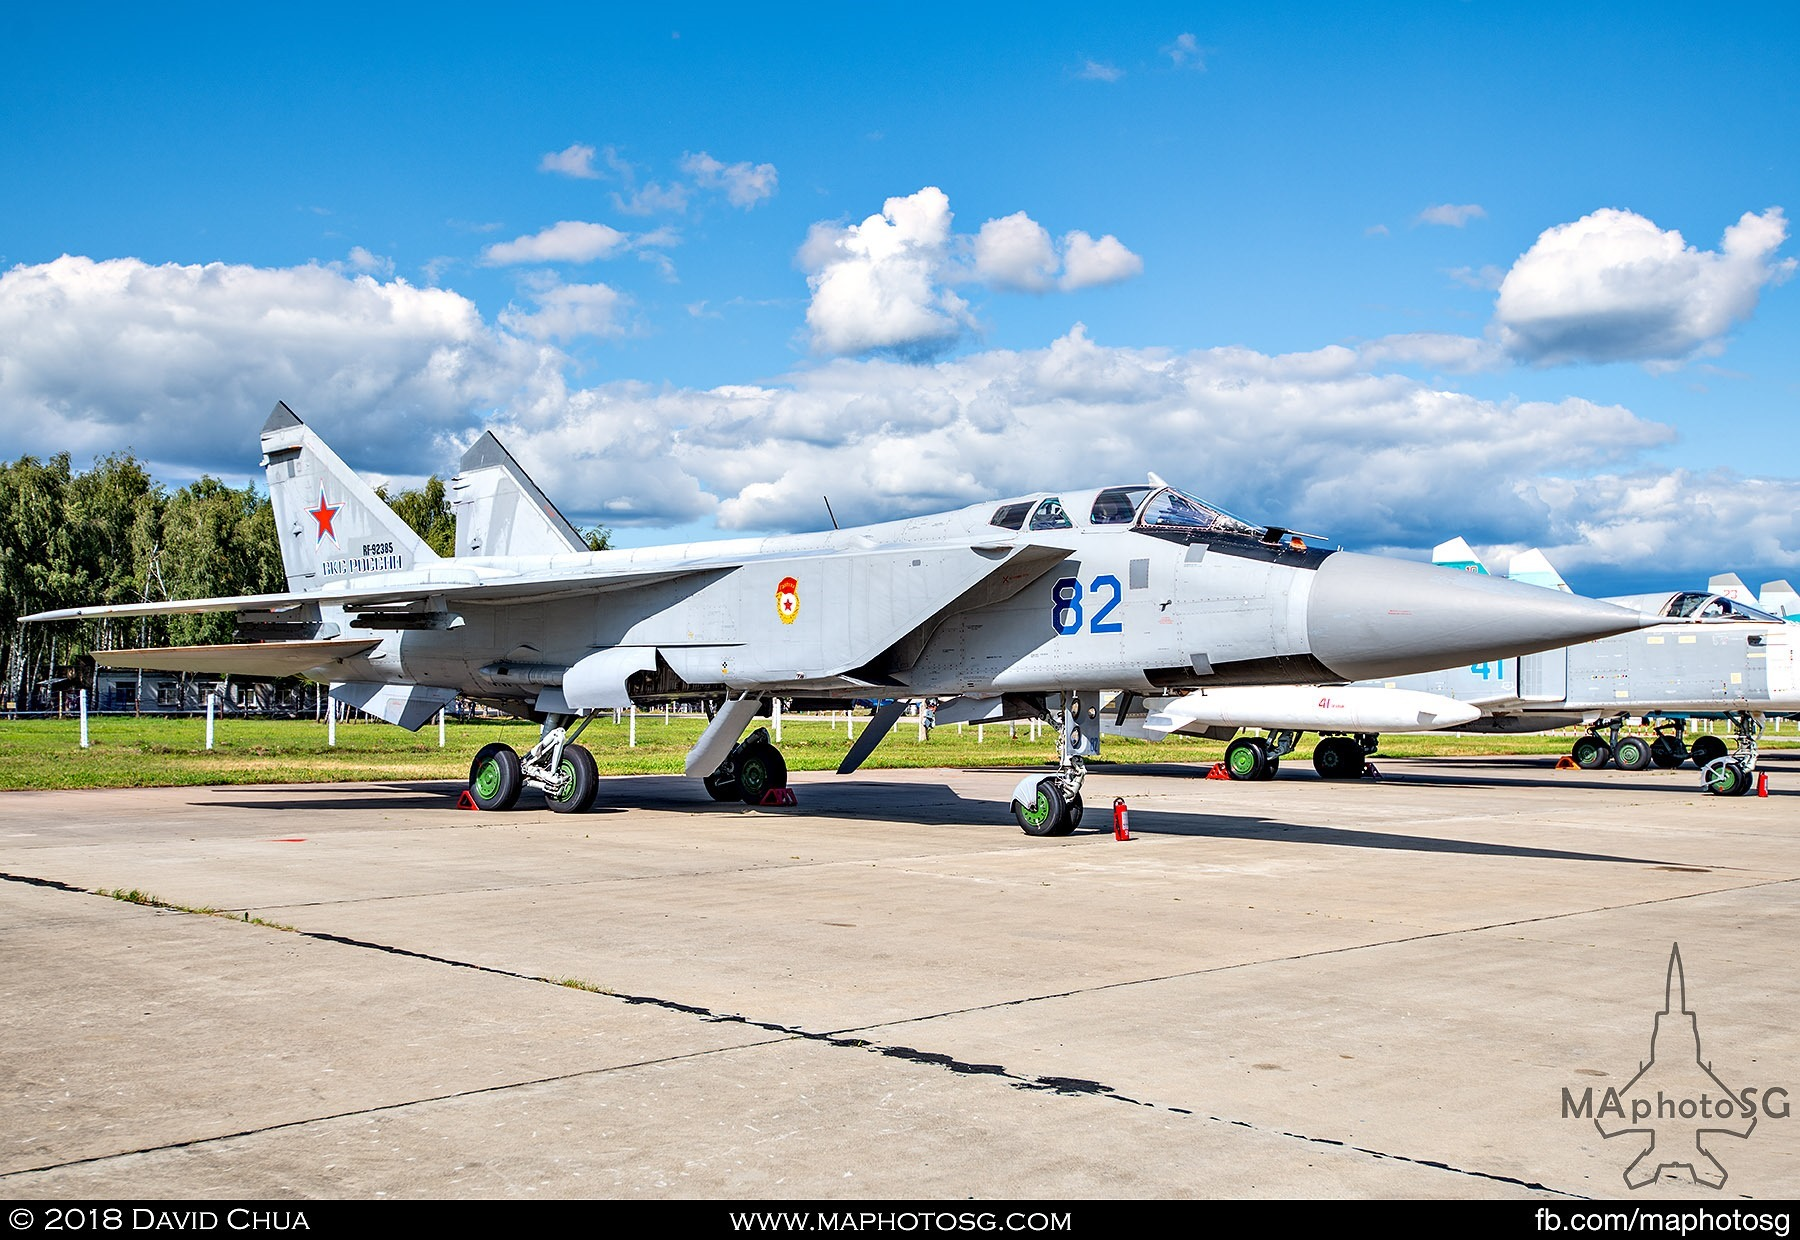 "29. Russian Air Force Mikoyan MiG-31bm ""Foxhound"" interceptor"